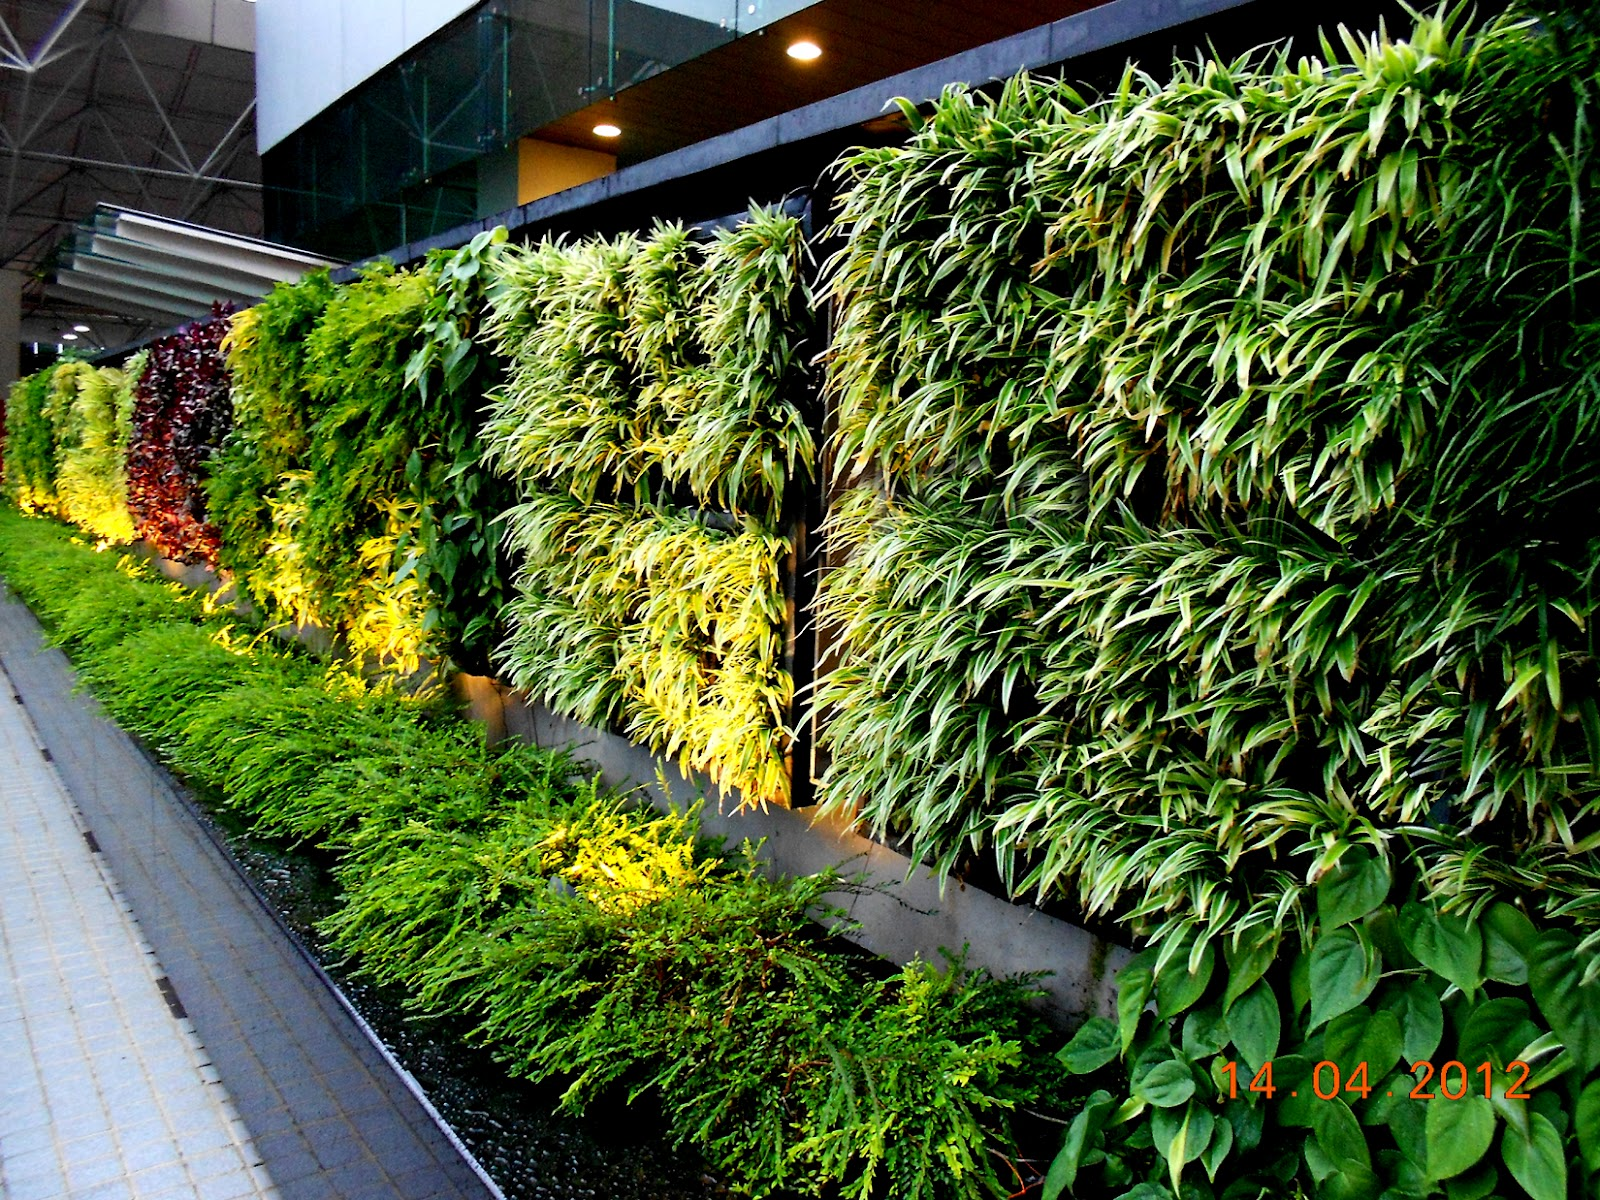 vertical garden concept for buildings greenwall vertical garden system for commercial. Black Bedroom Furniture Sets. Home Design Ideas